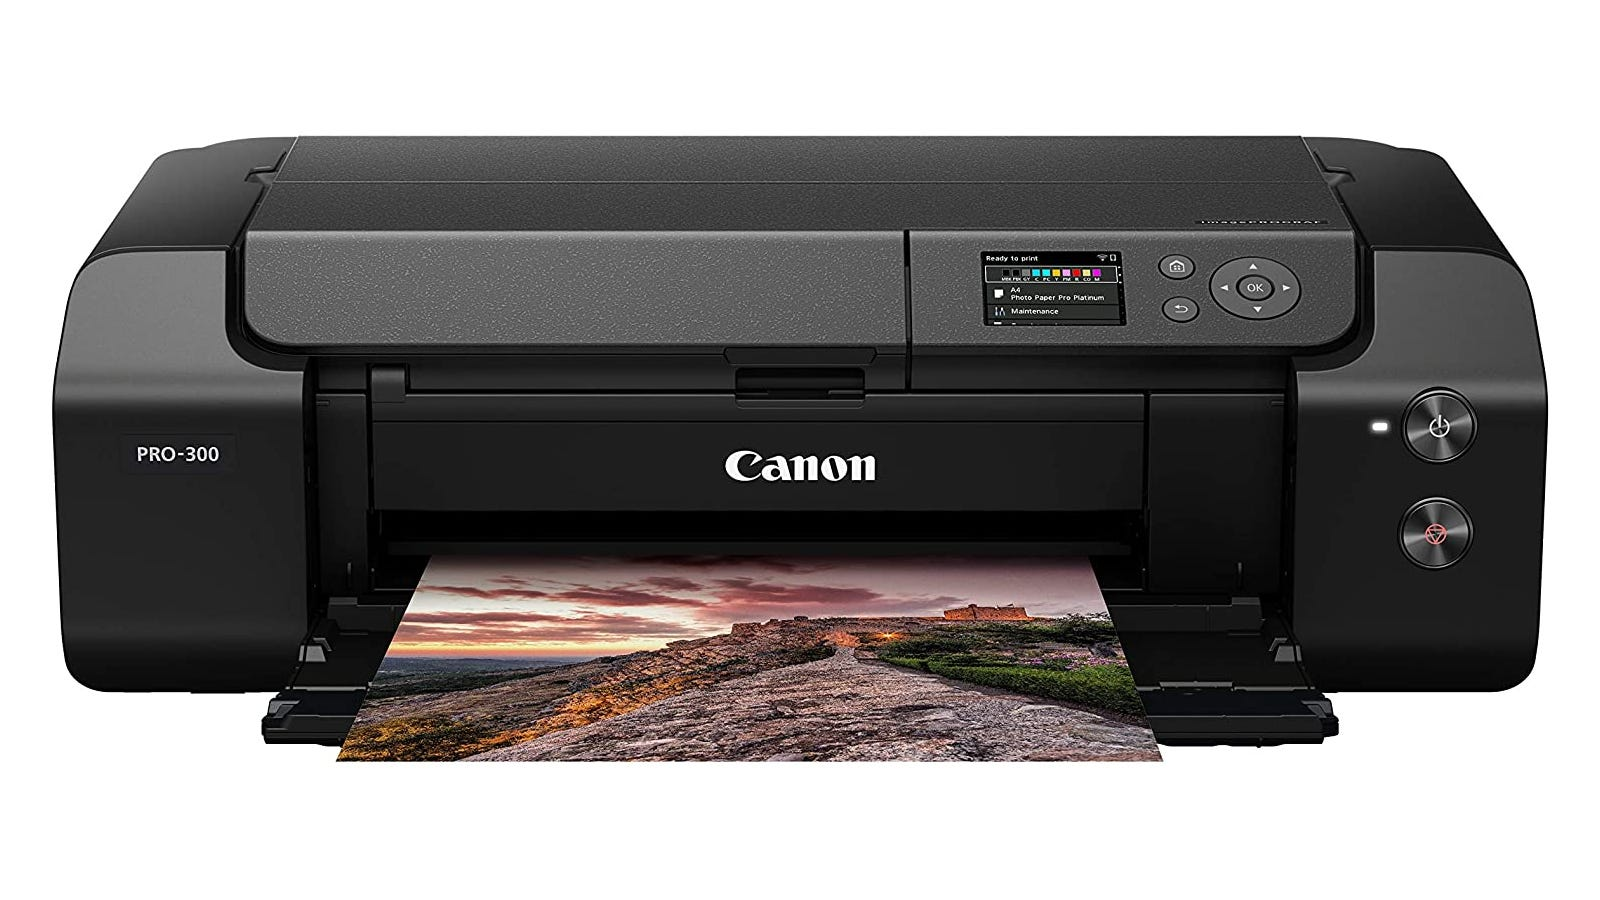 Black wide-format photo printer with Profession Print & Layout Software